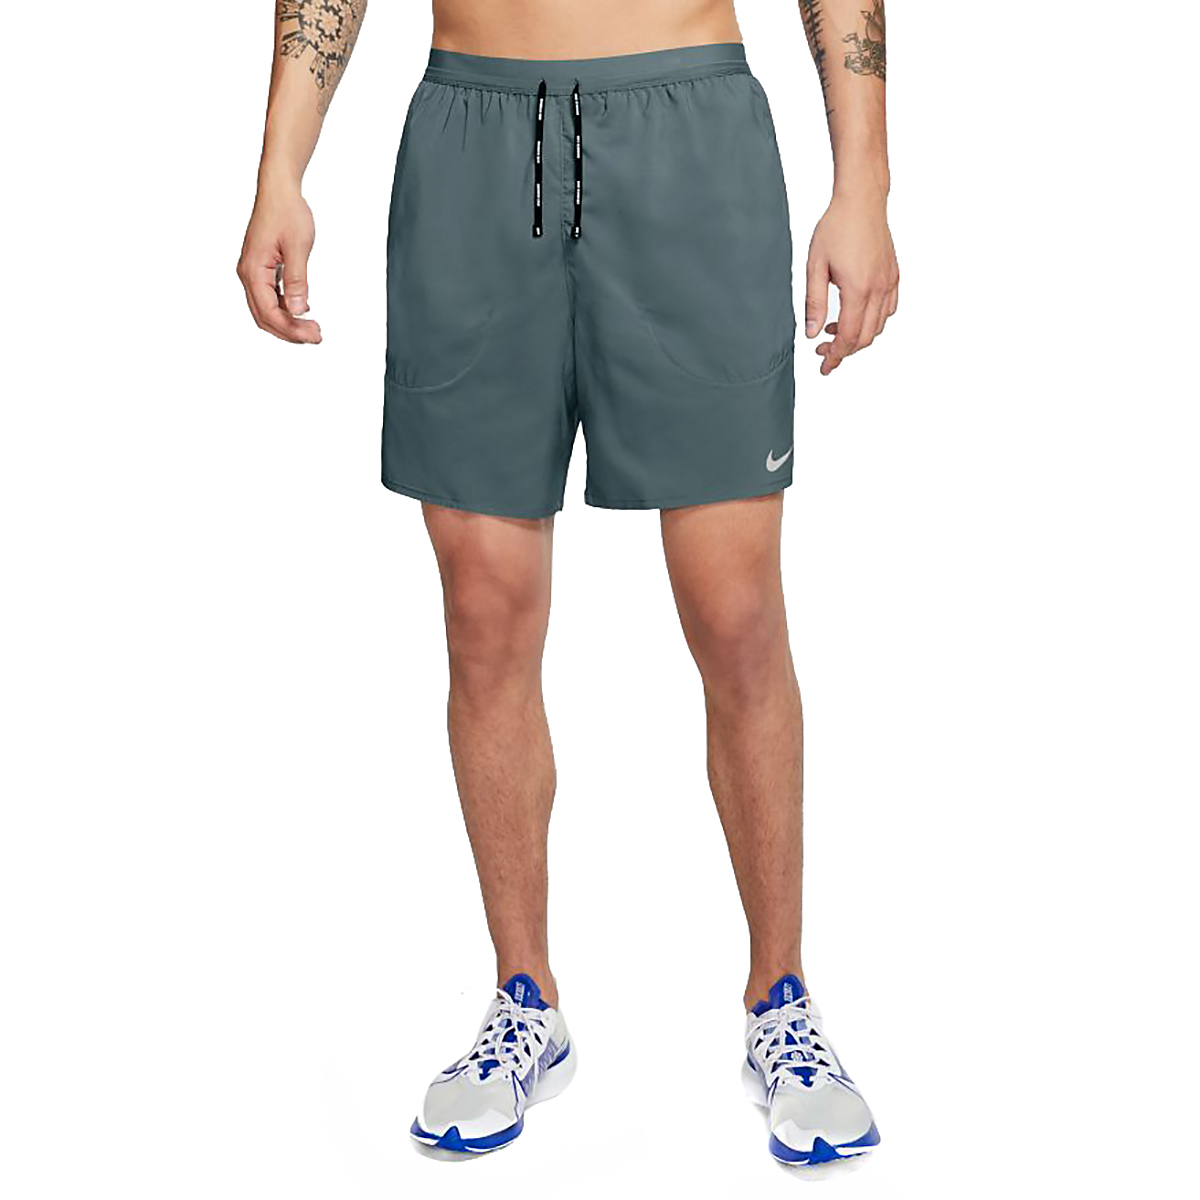 """Men's Nike Flex Stride 7"""" Brief Running Shorts - Color: Hasta/Reflective Silver - Size: XS, Hasta/Reflective Silver, large, image 1"""